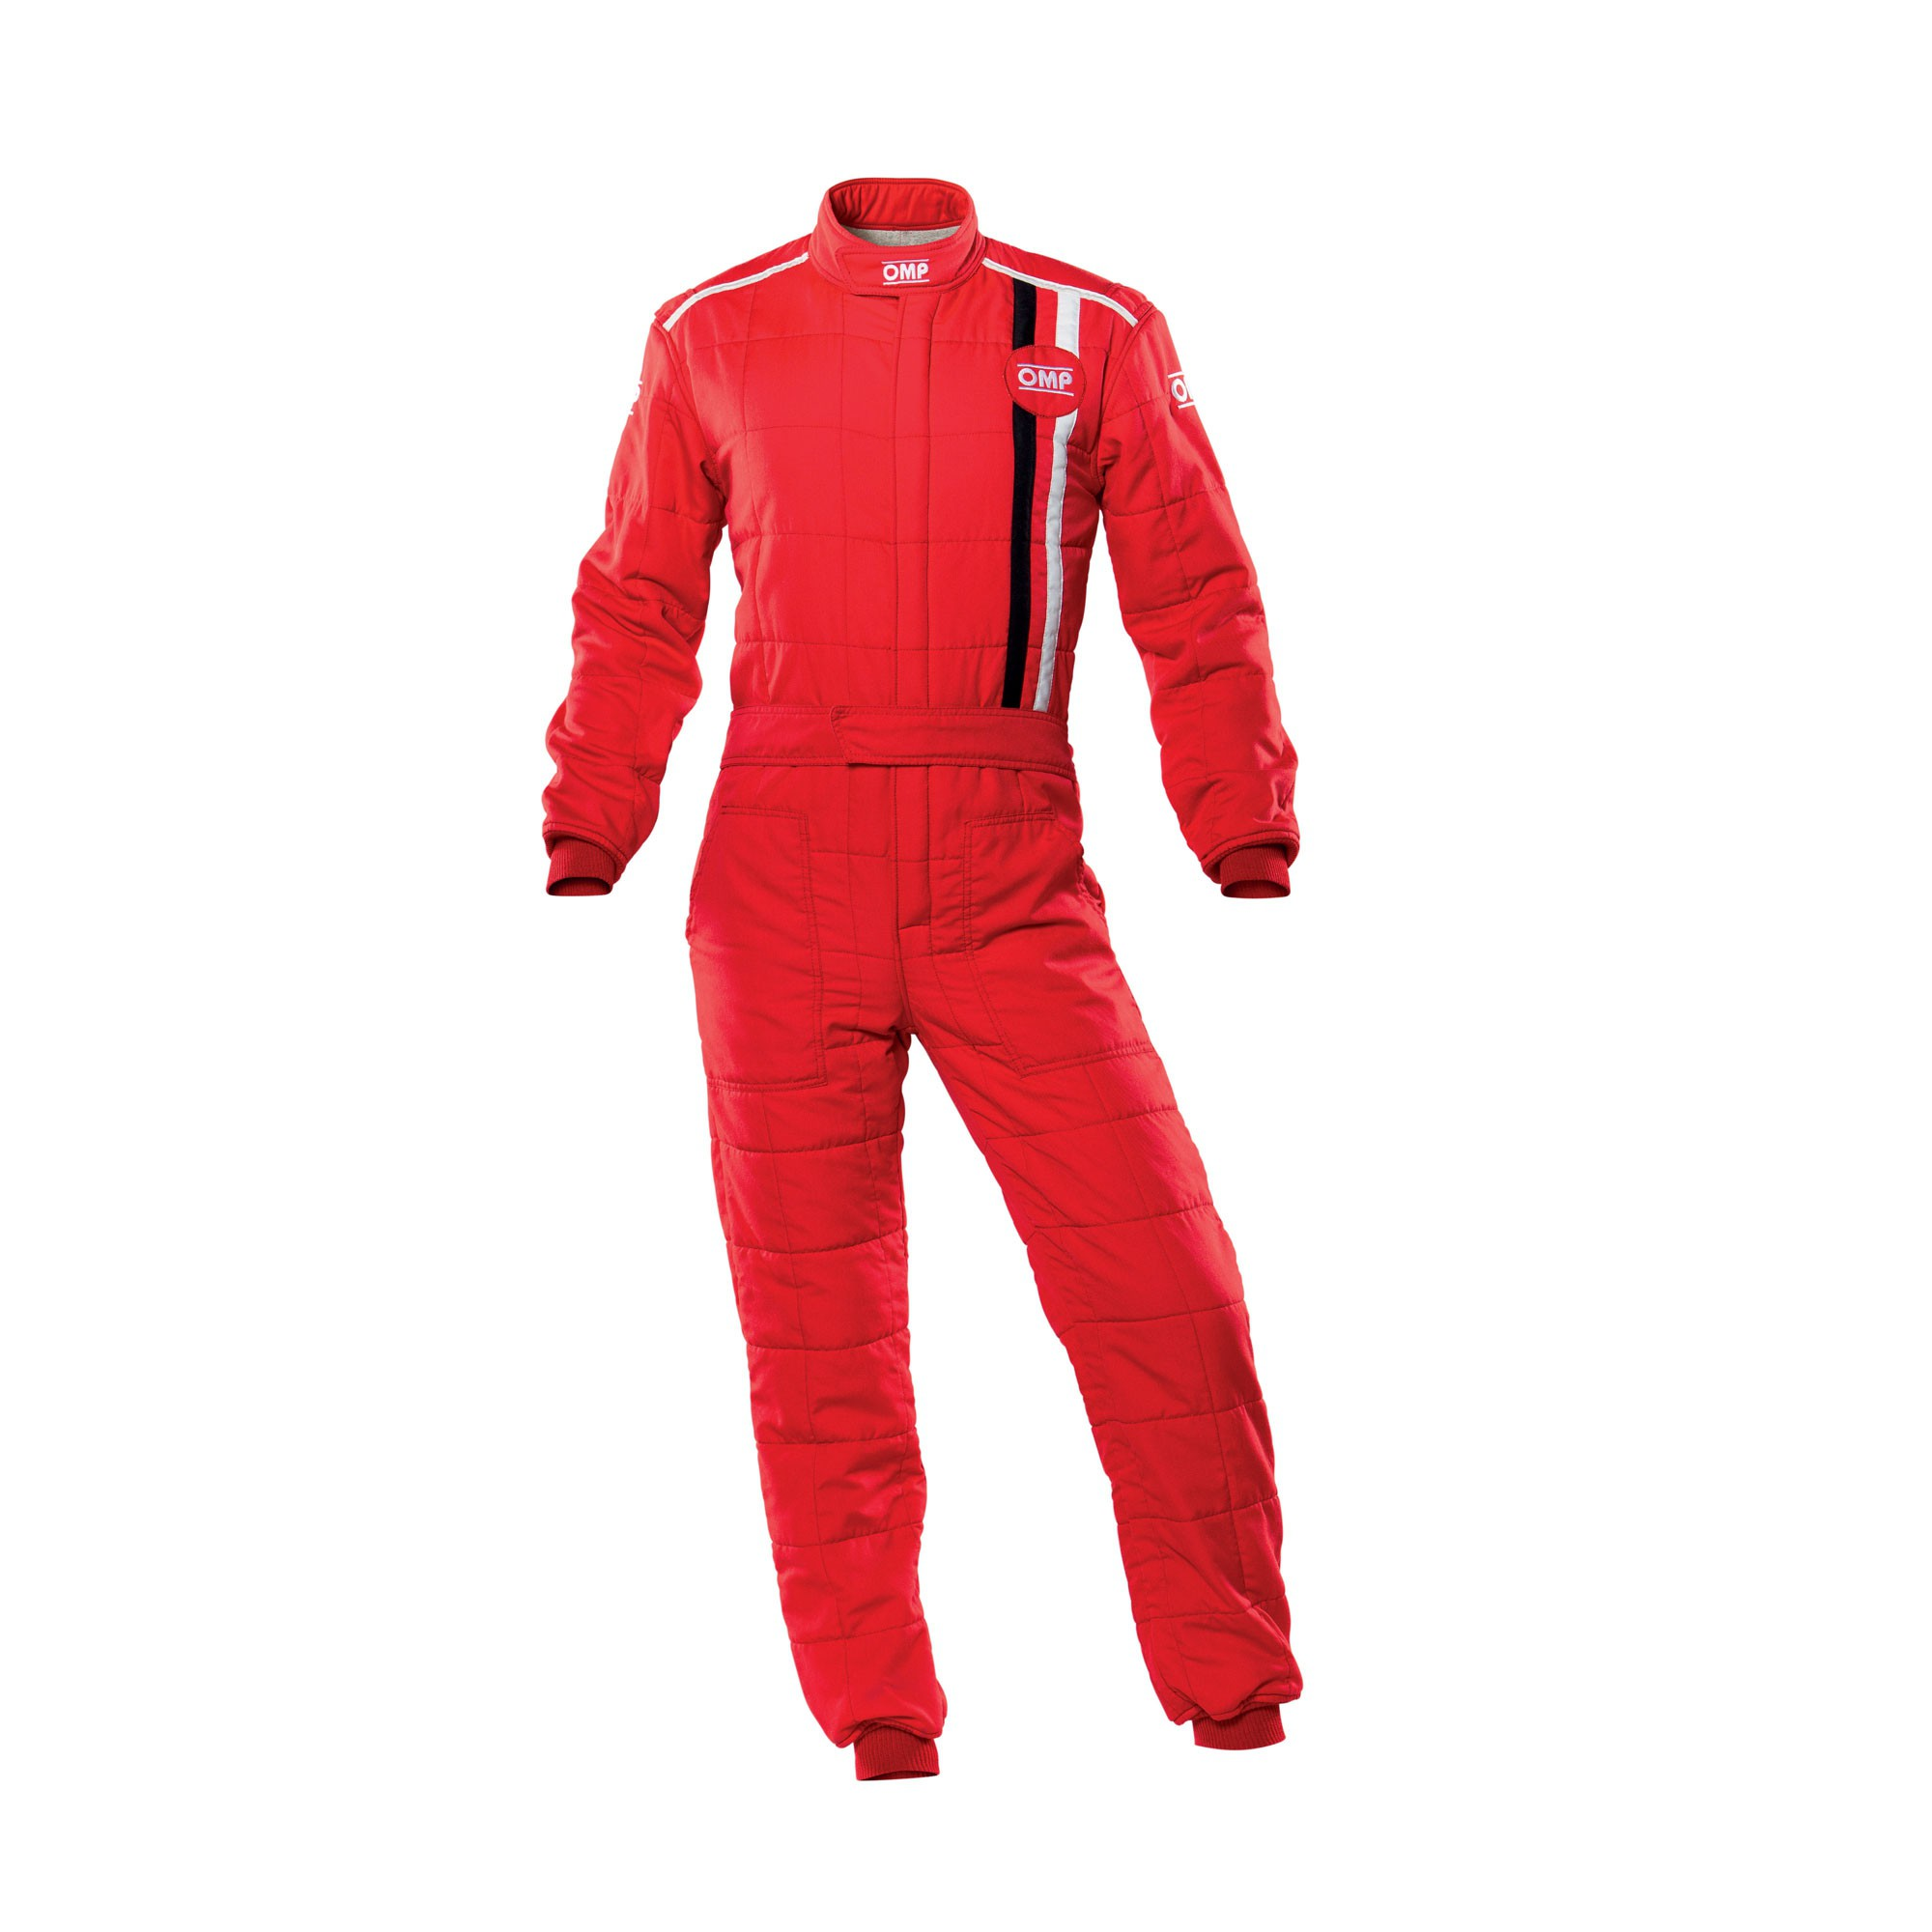 CLASSIC OVERALL my2021 RED SIZE 46 FIA 8856-2018